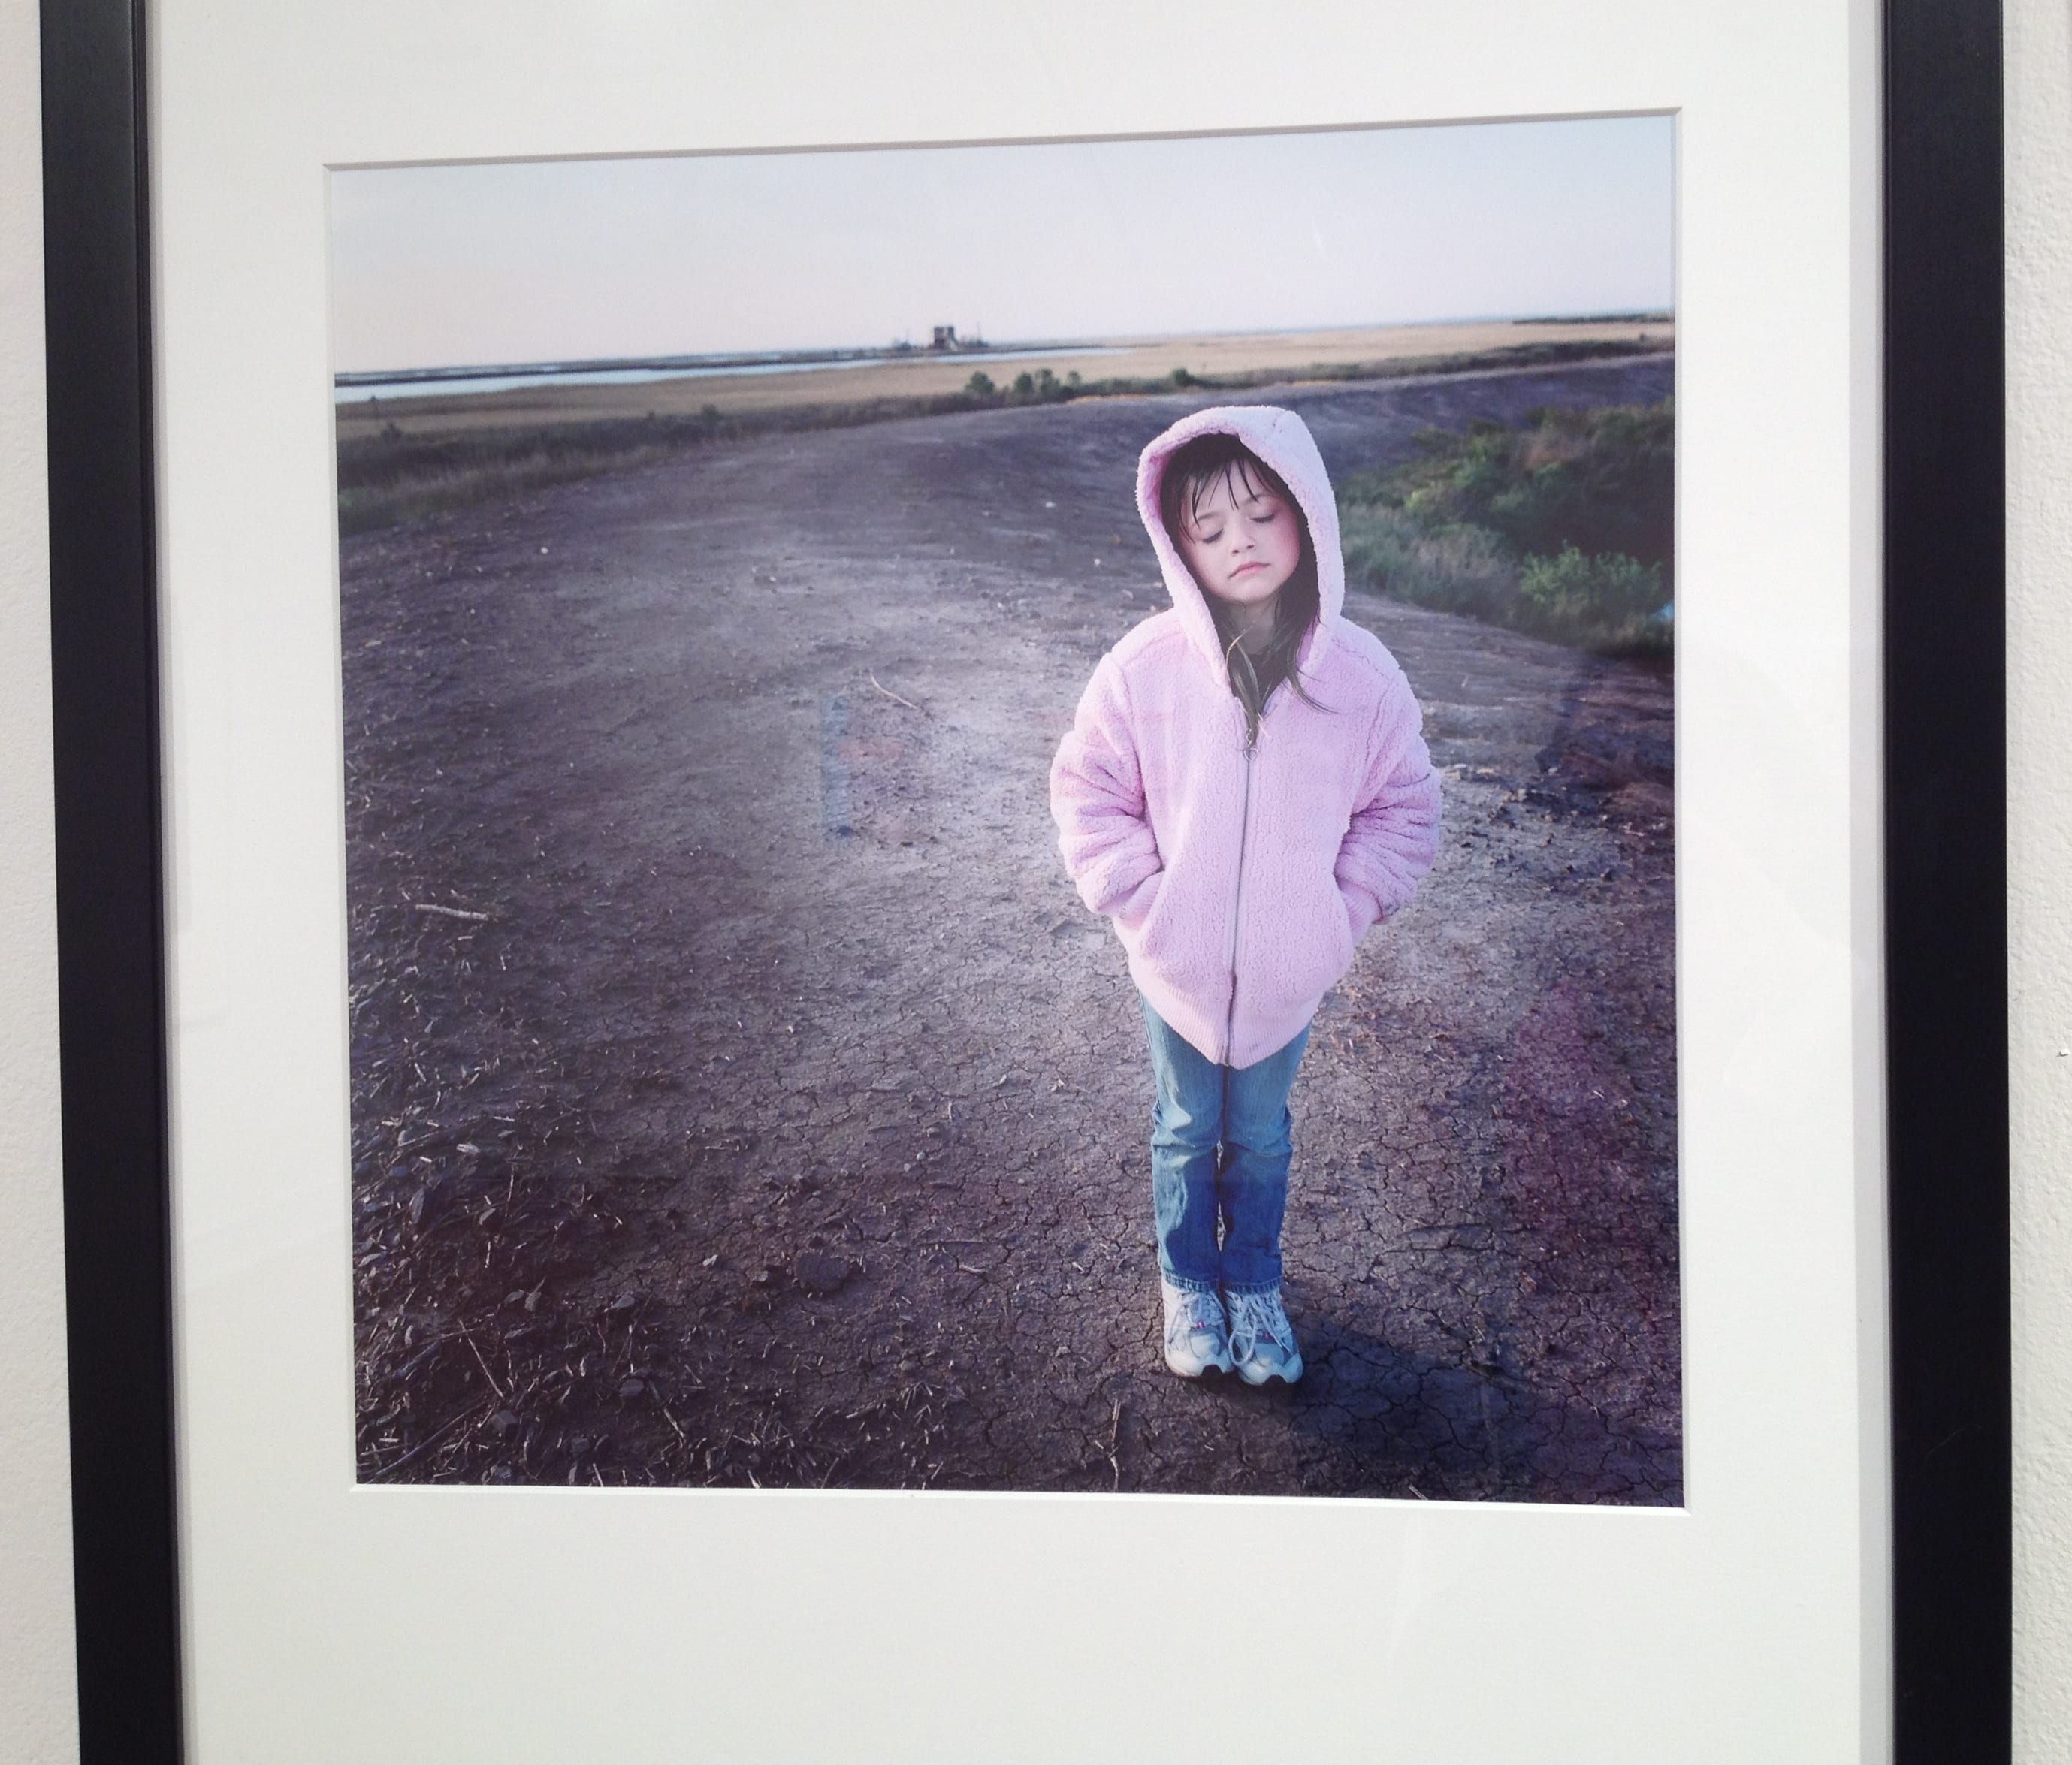 Adjunct Lecturer Kael Alford's Juliette on the Levee, 2009, one of three Alford works in the show. Archival inkjet print, 14 x 14 inches.